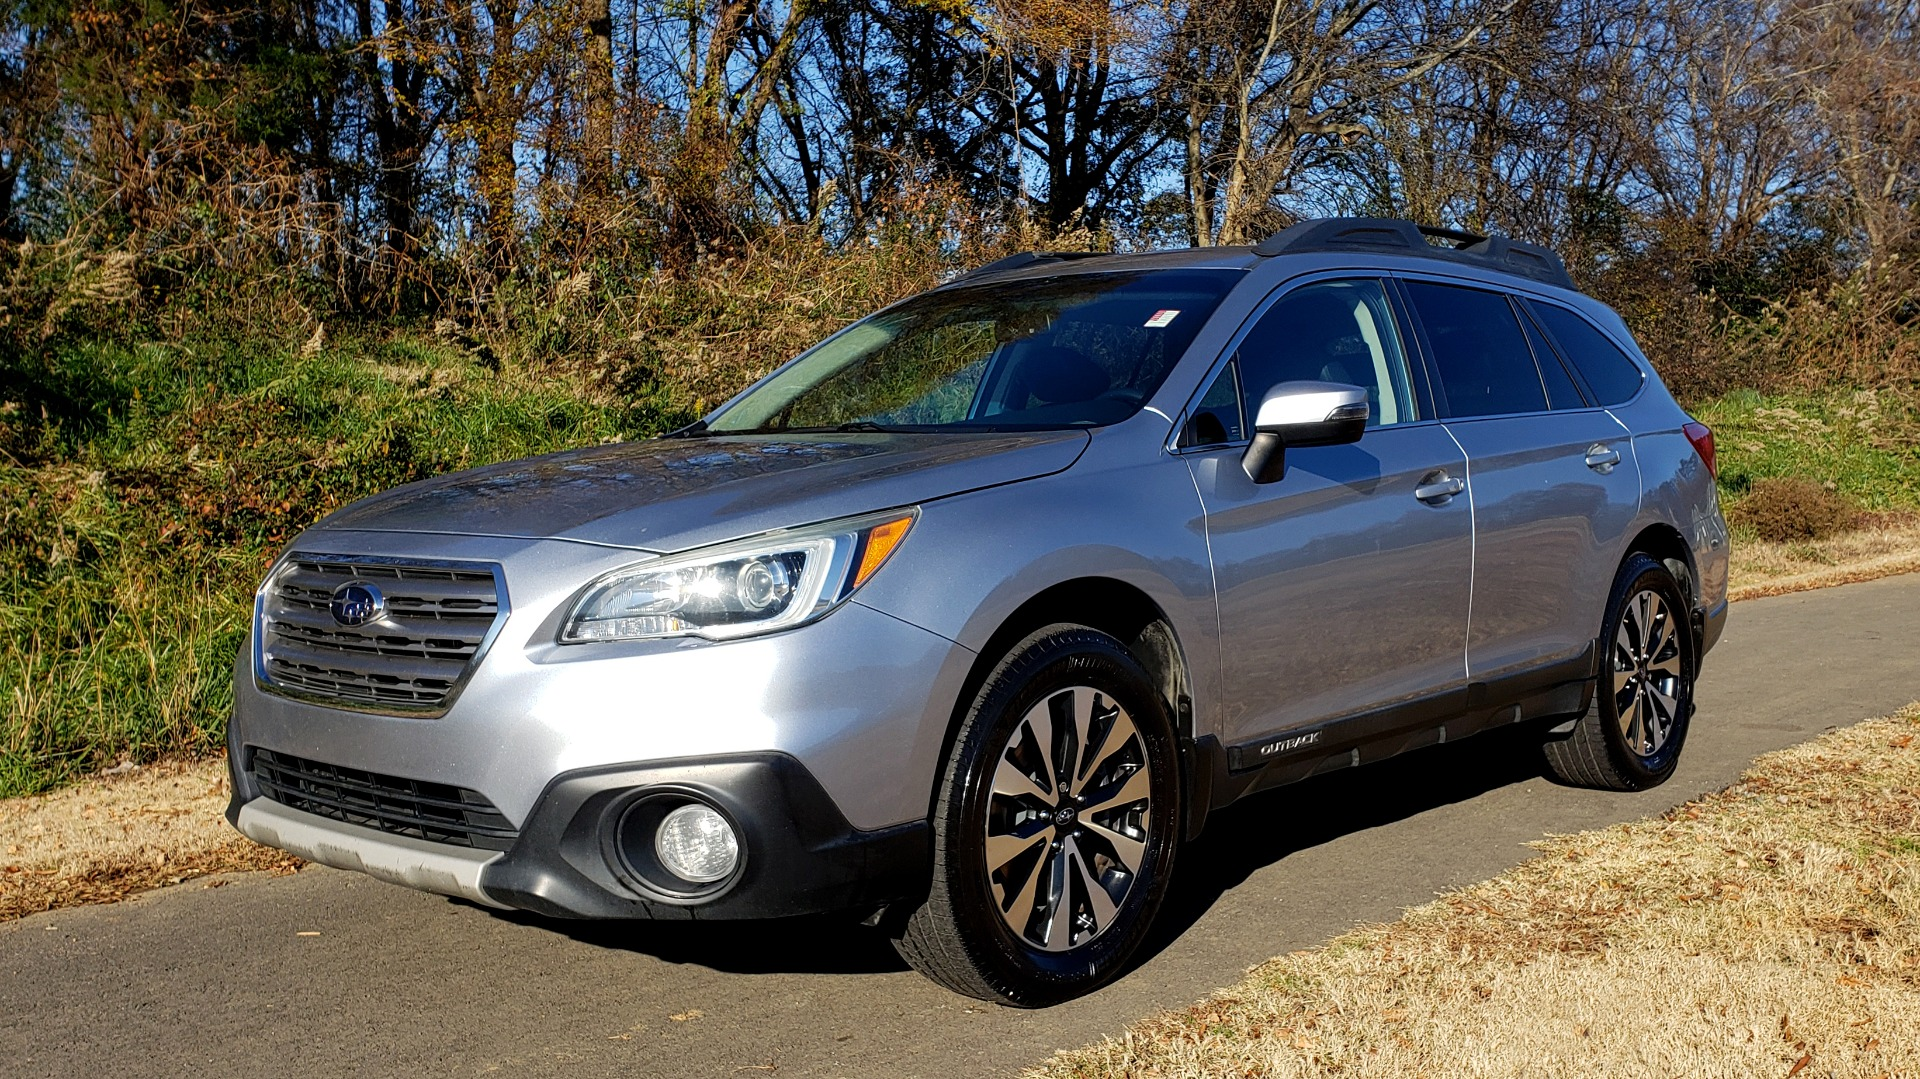 Used 2015 Subaru OUTBACK 2.5I LIMITED / AWD / 2.5L 4-CYL / AUTO / 18IN WHEELS for sale $14,900 at Formula Imports in Charlotte NC 28227 1